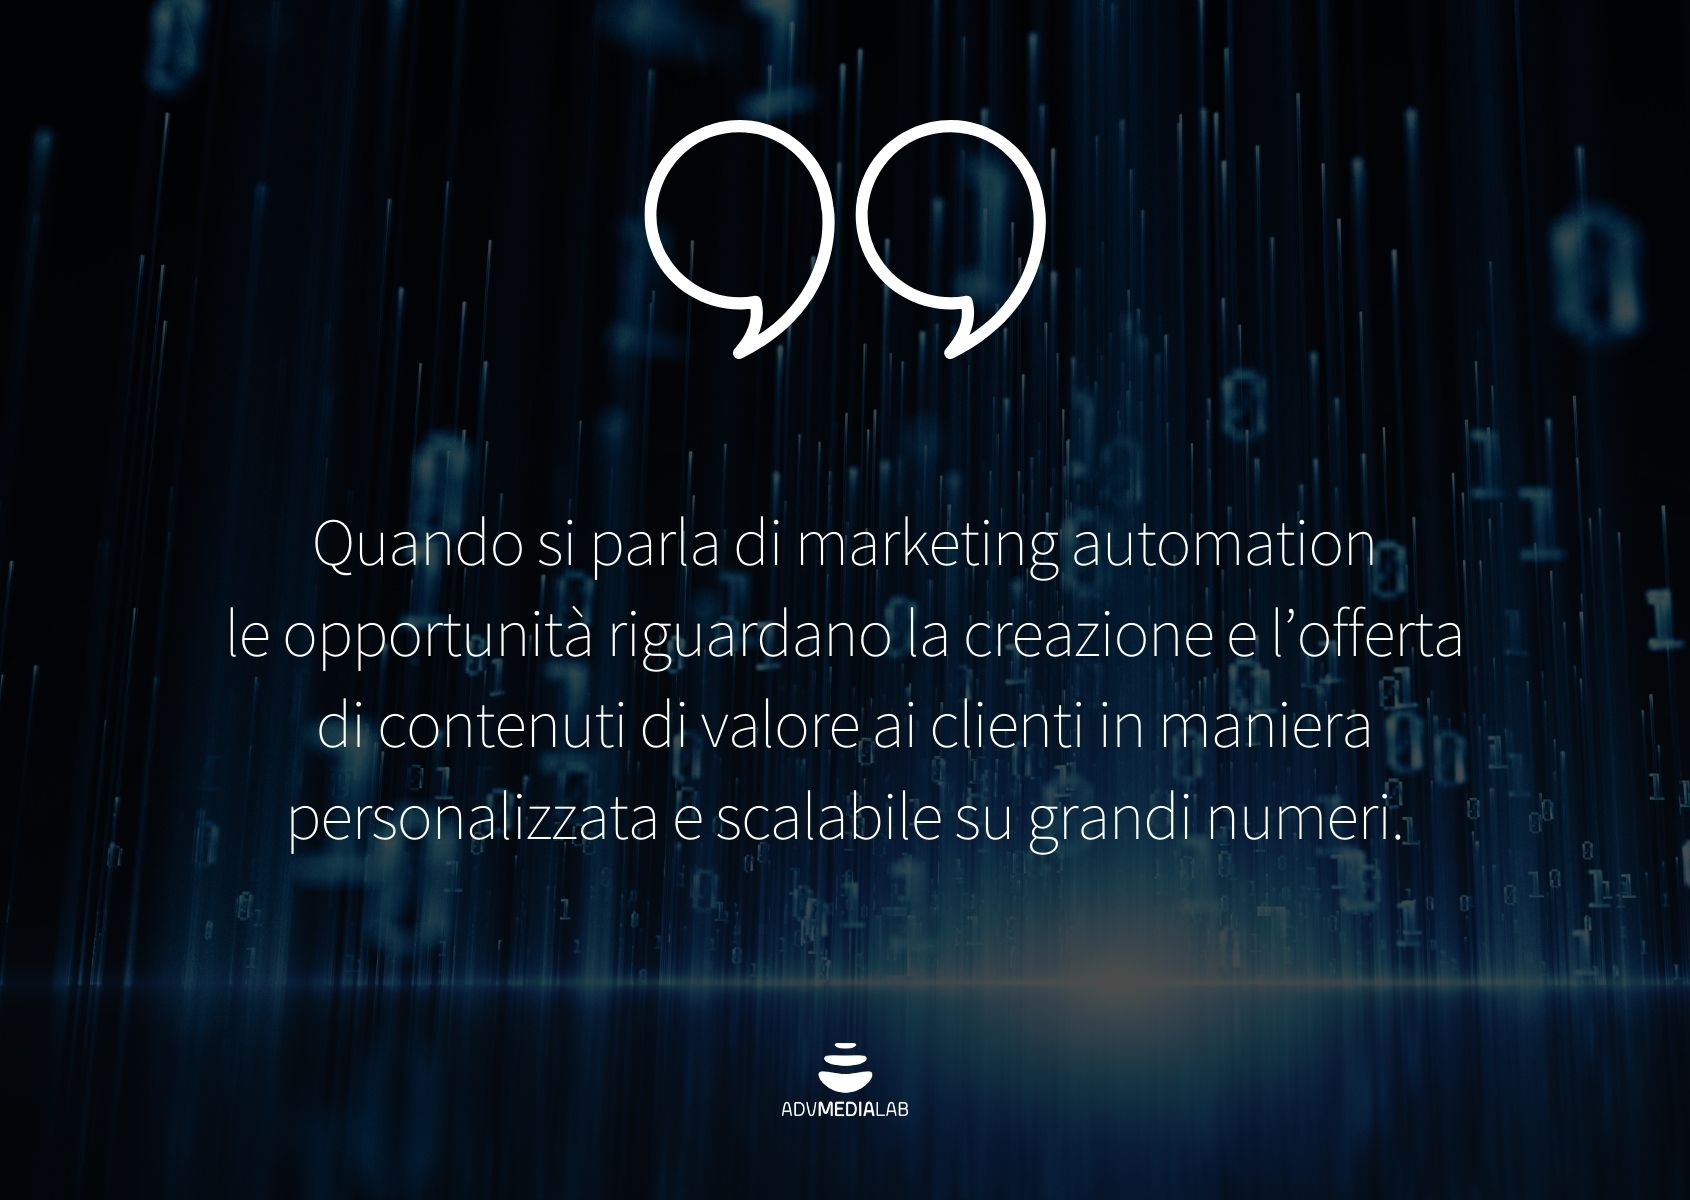 Marketing-automation-2021-quote1